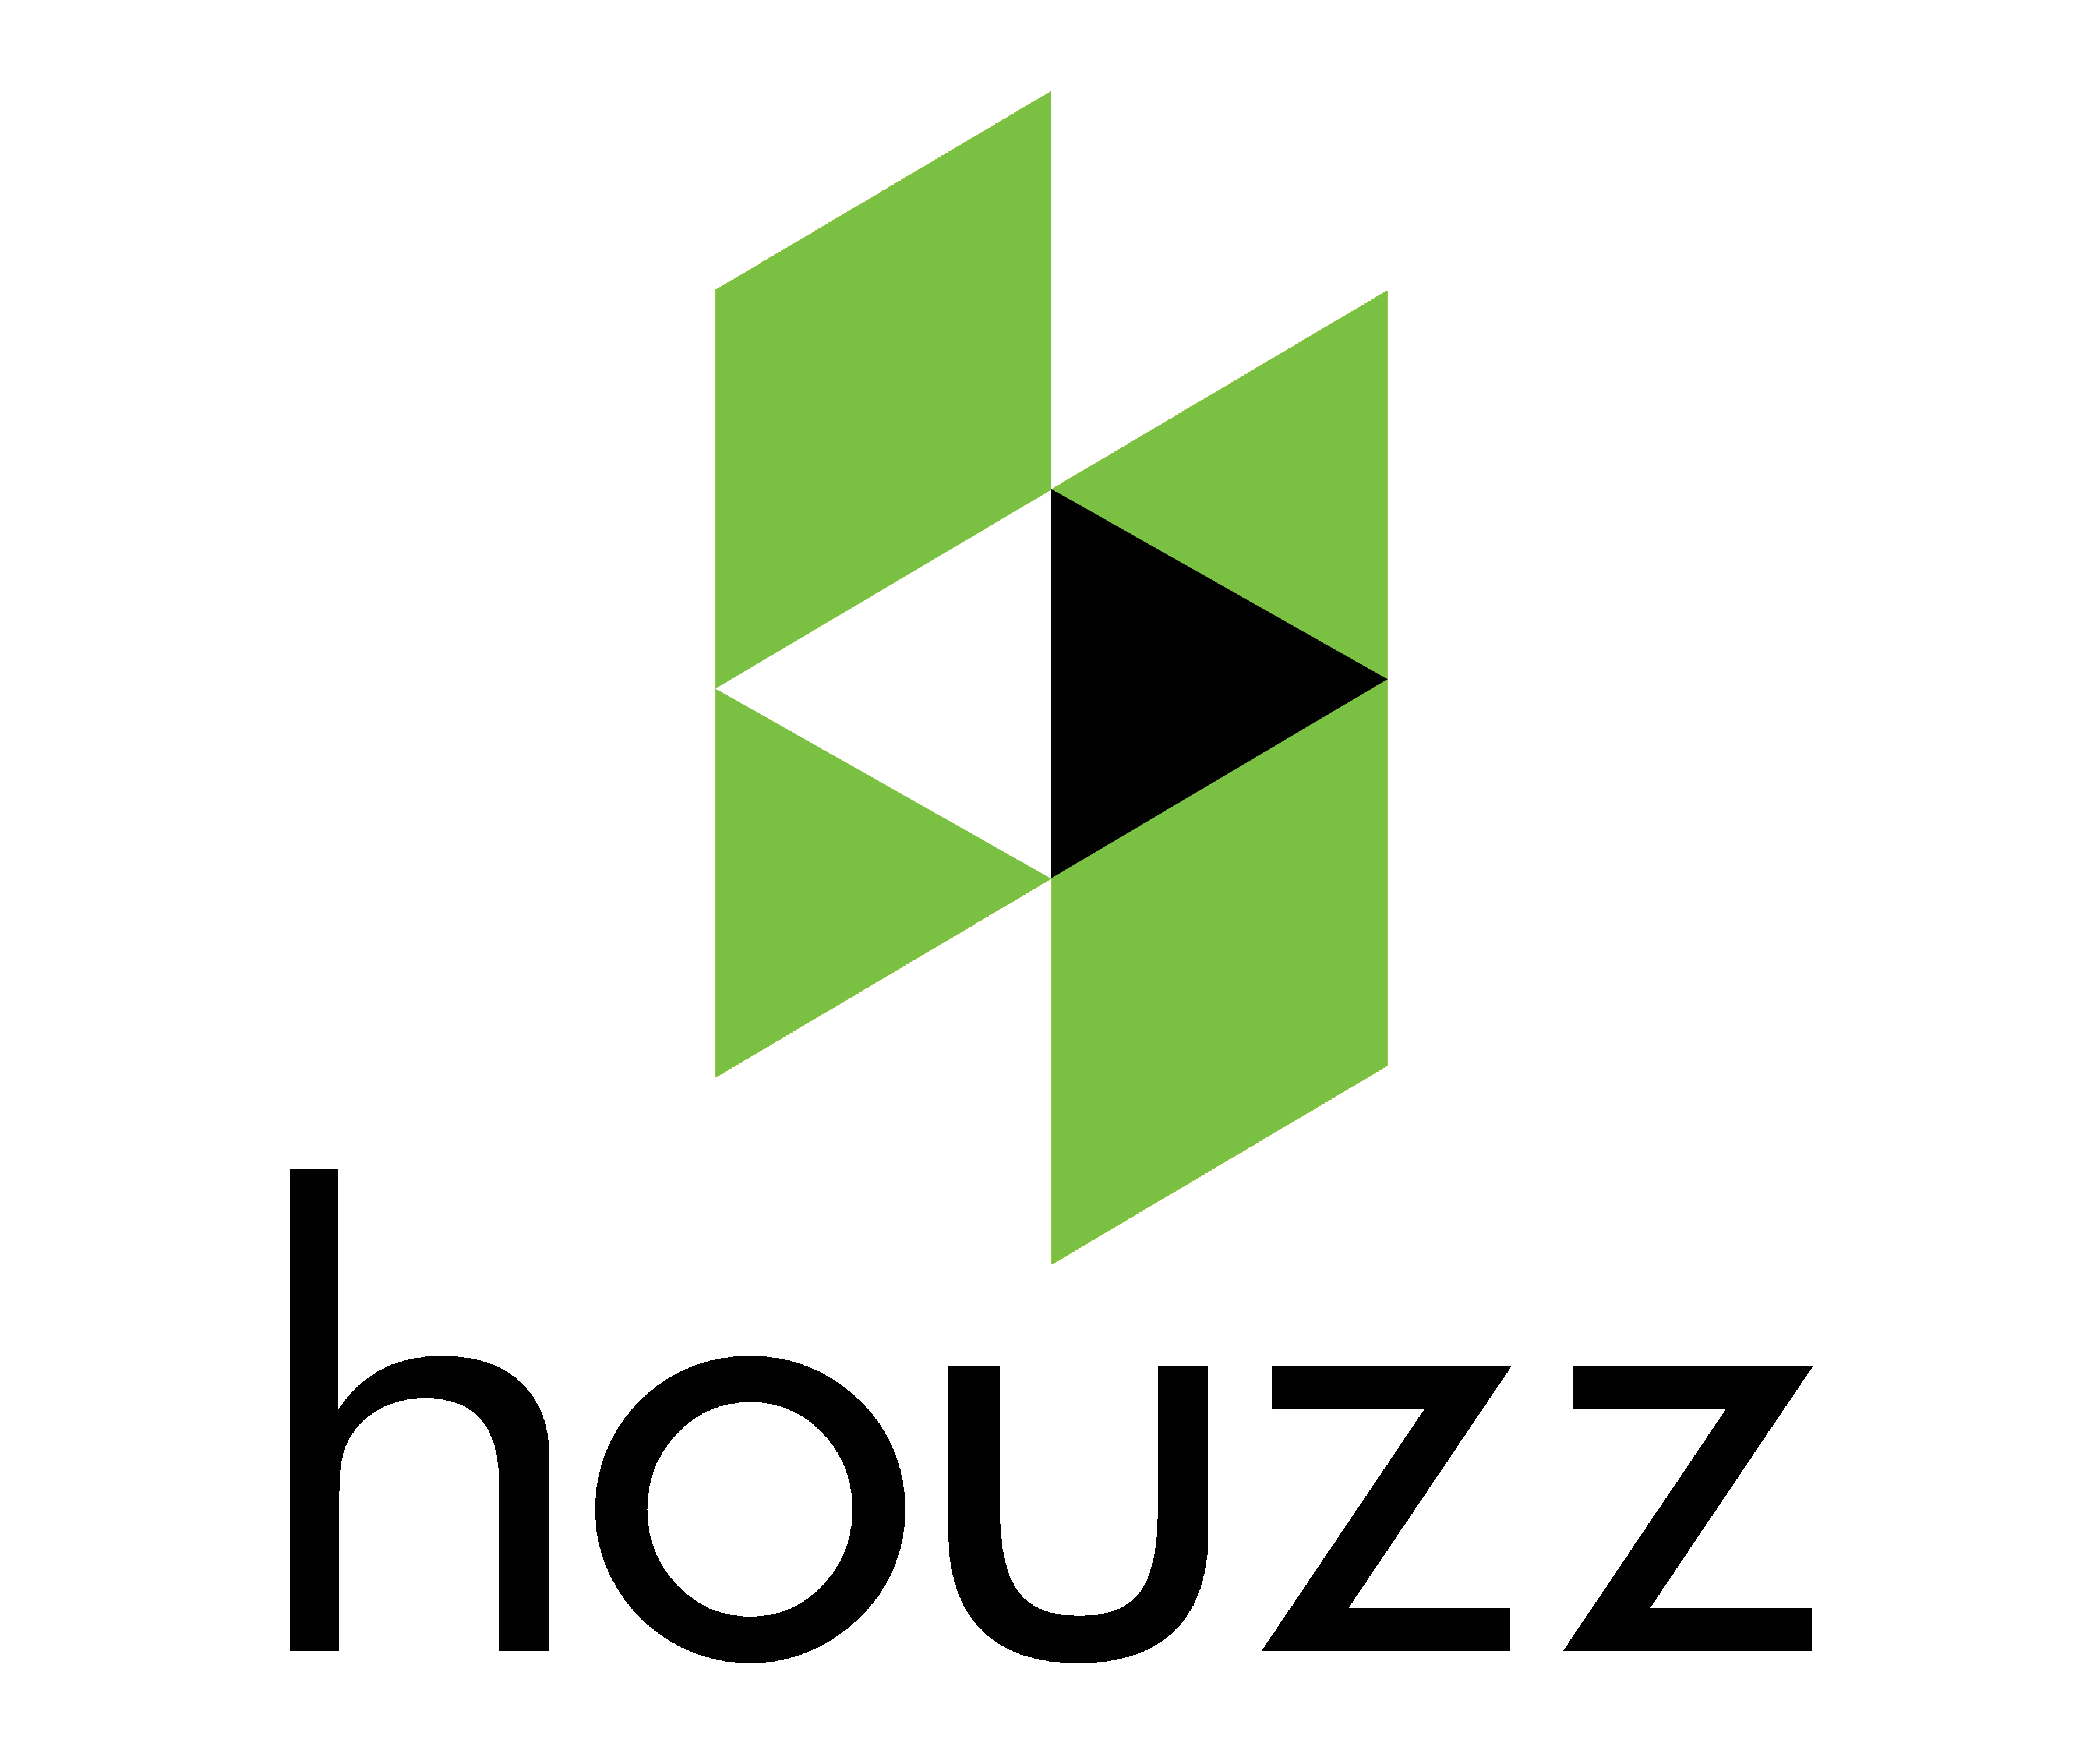 meaning houzz logo and symbol